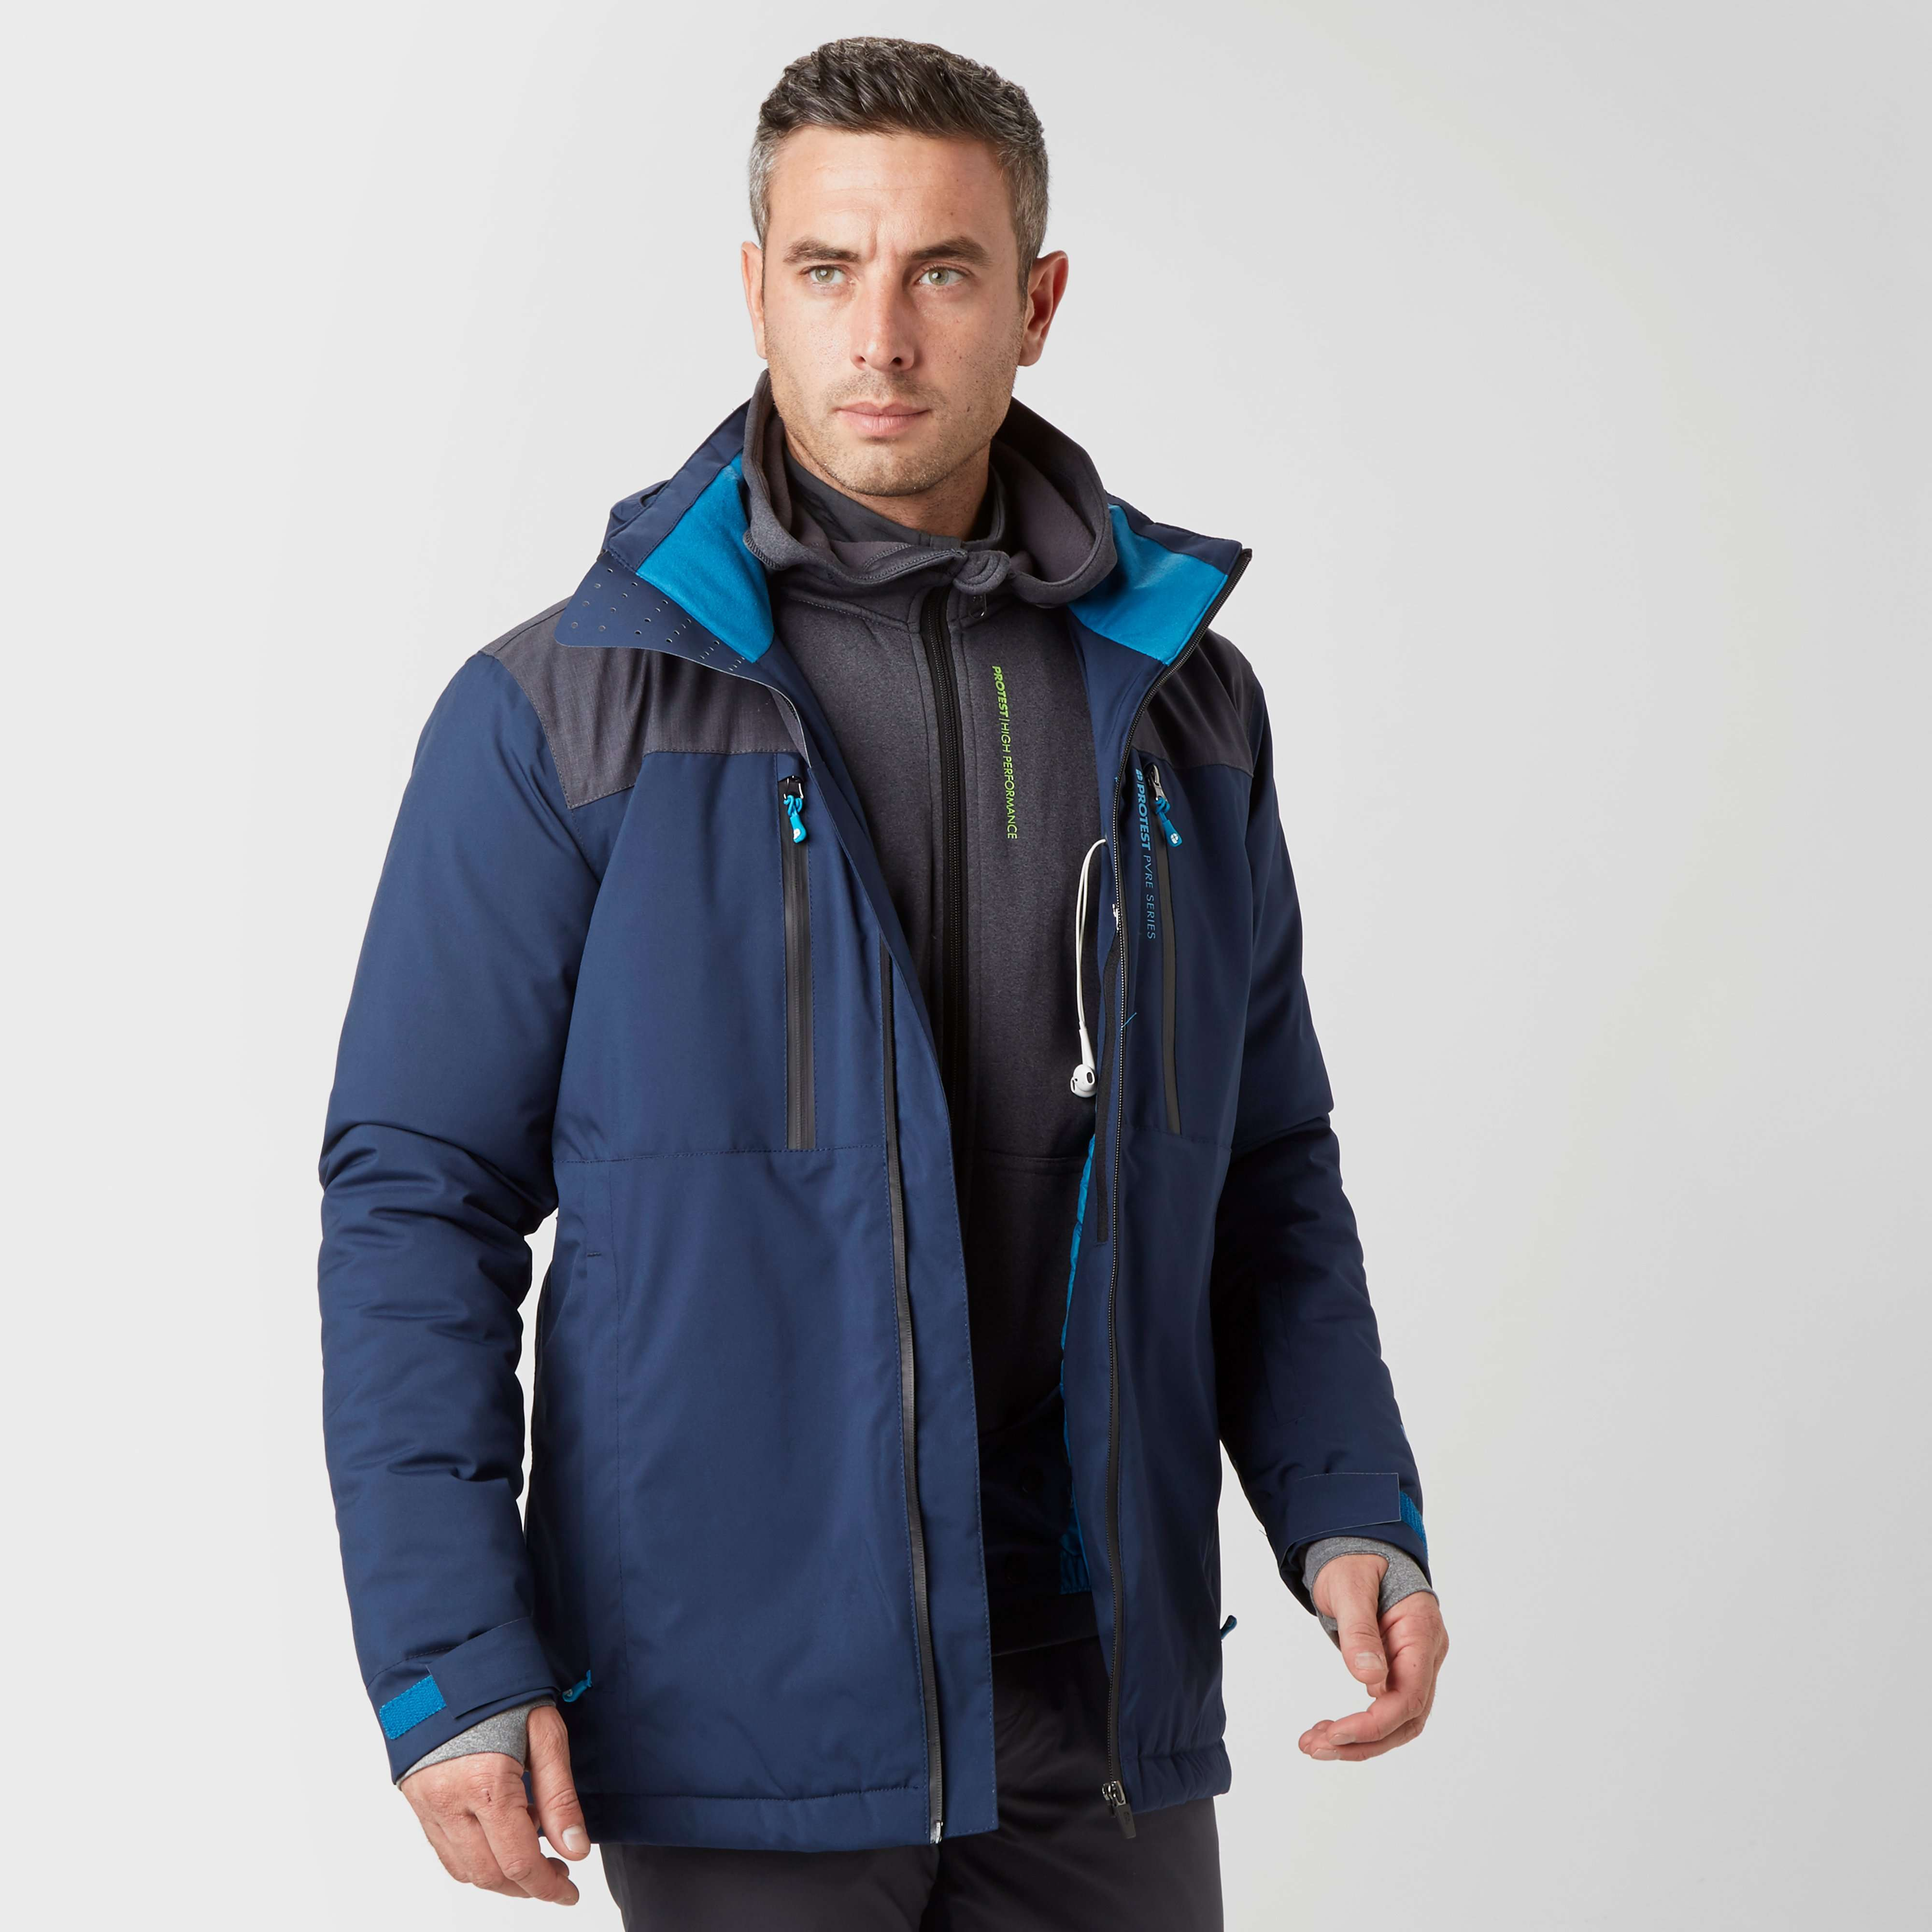 PROTEST Men's Clue Ski Jacket